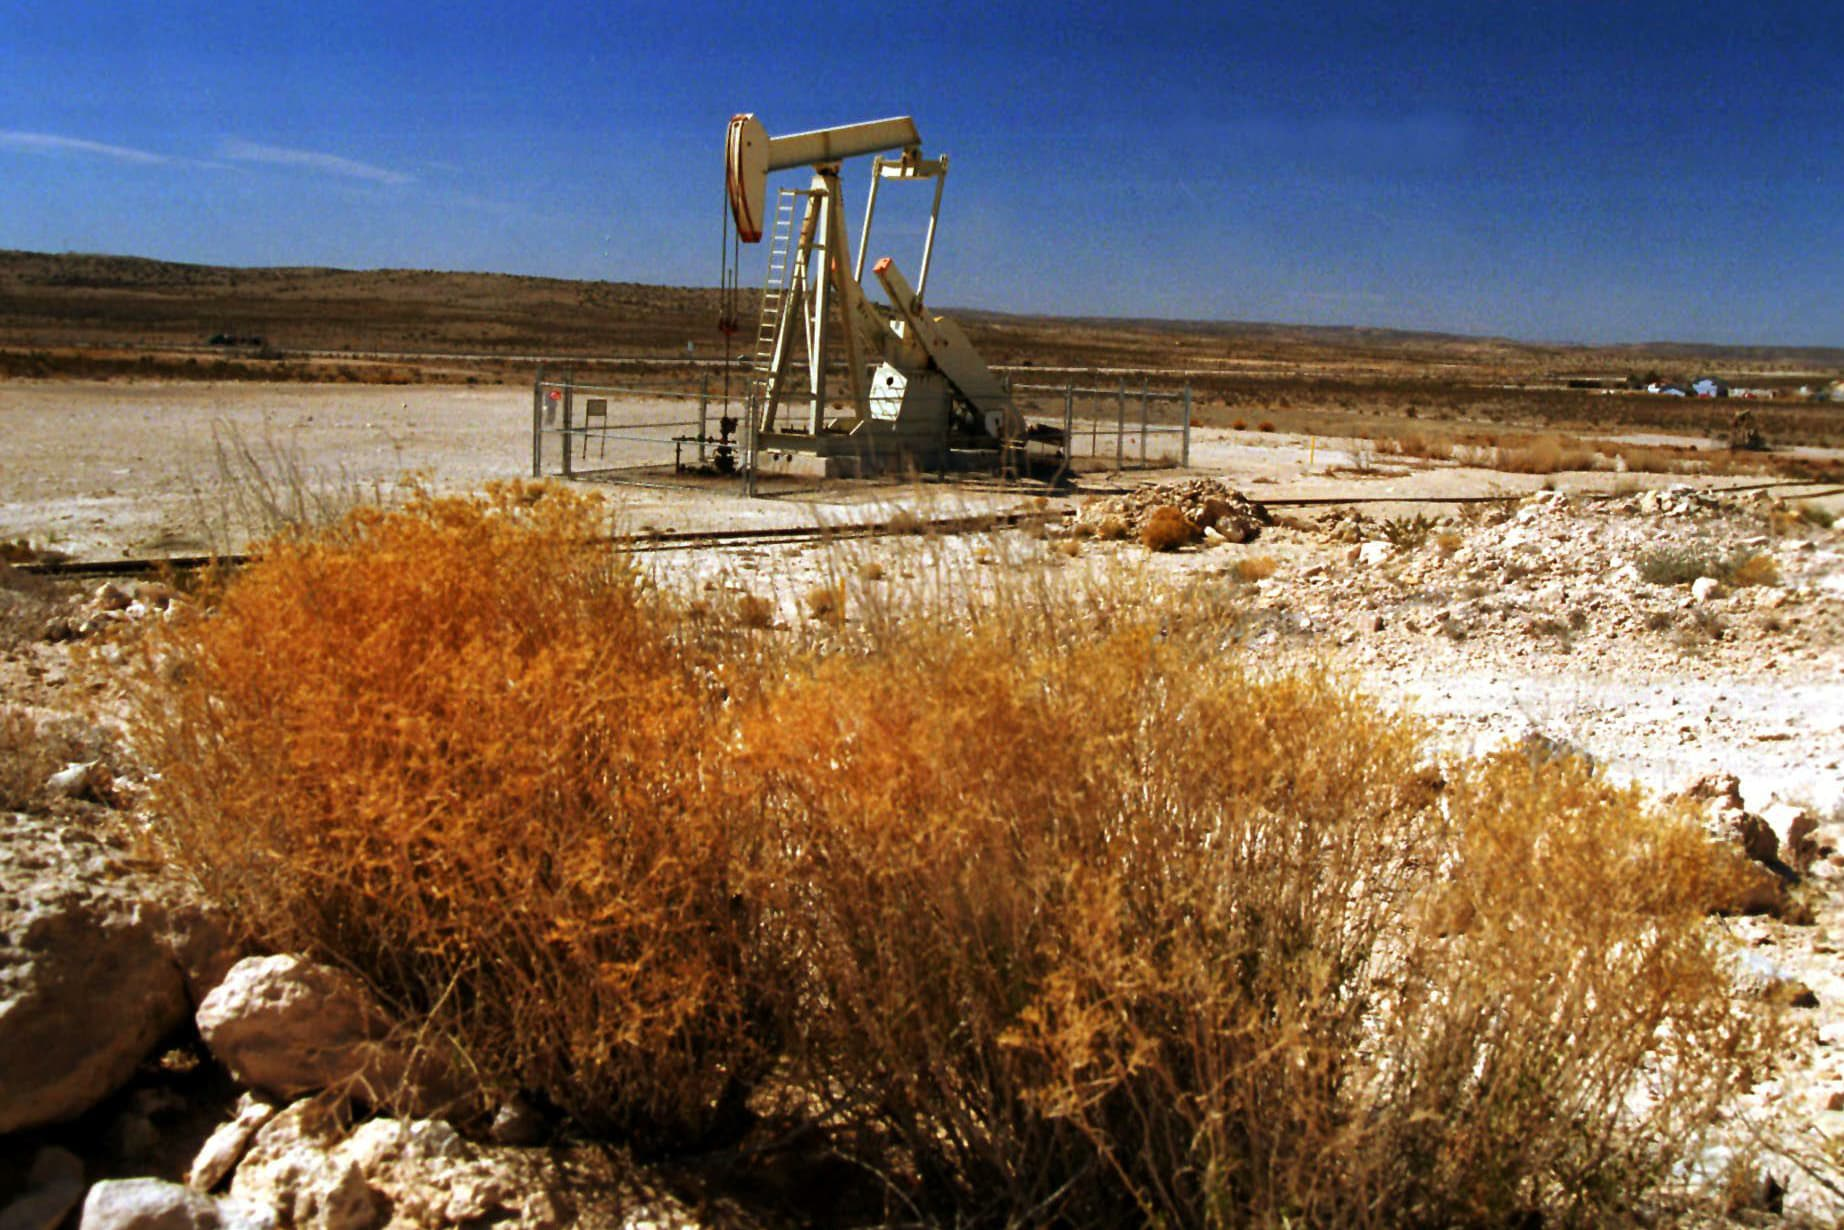 An oil pump operates in the Permian Basin oil field near Carlsbad, New Mexico.